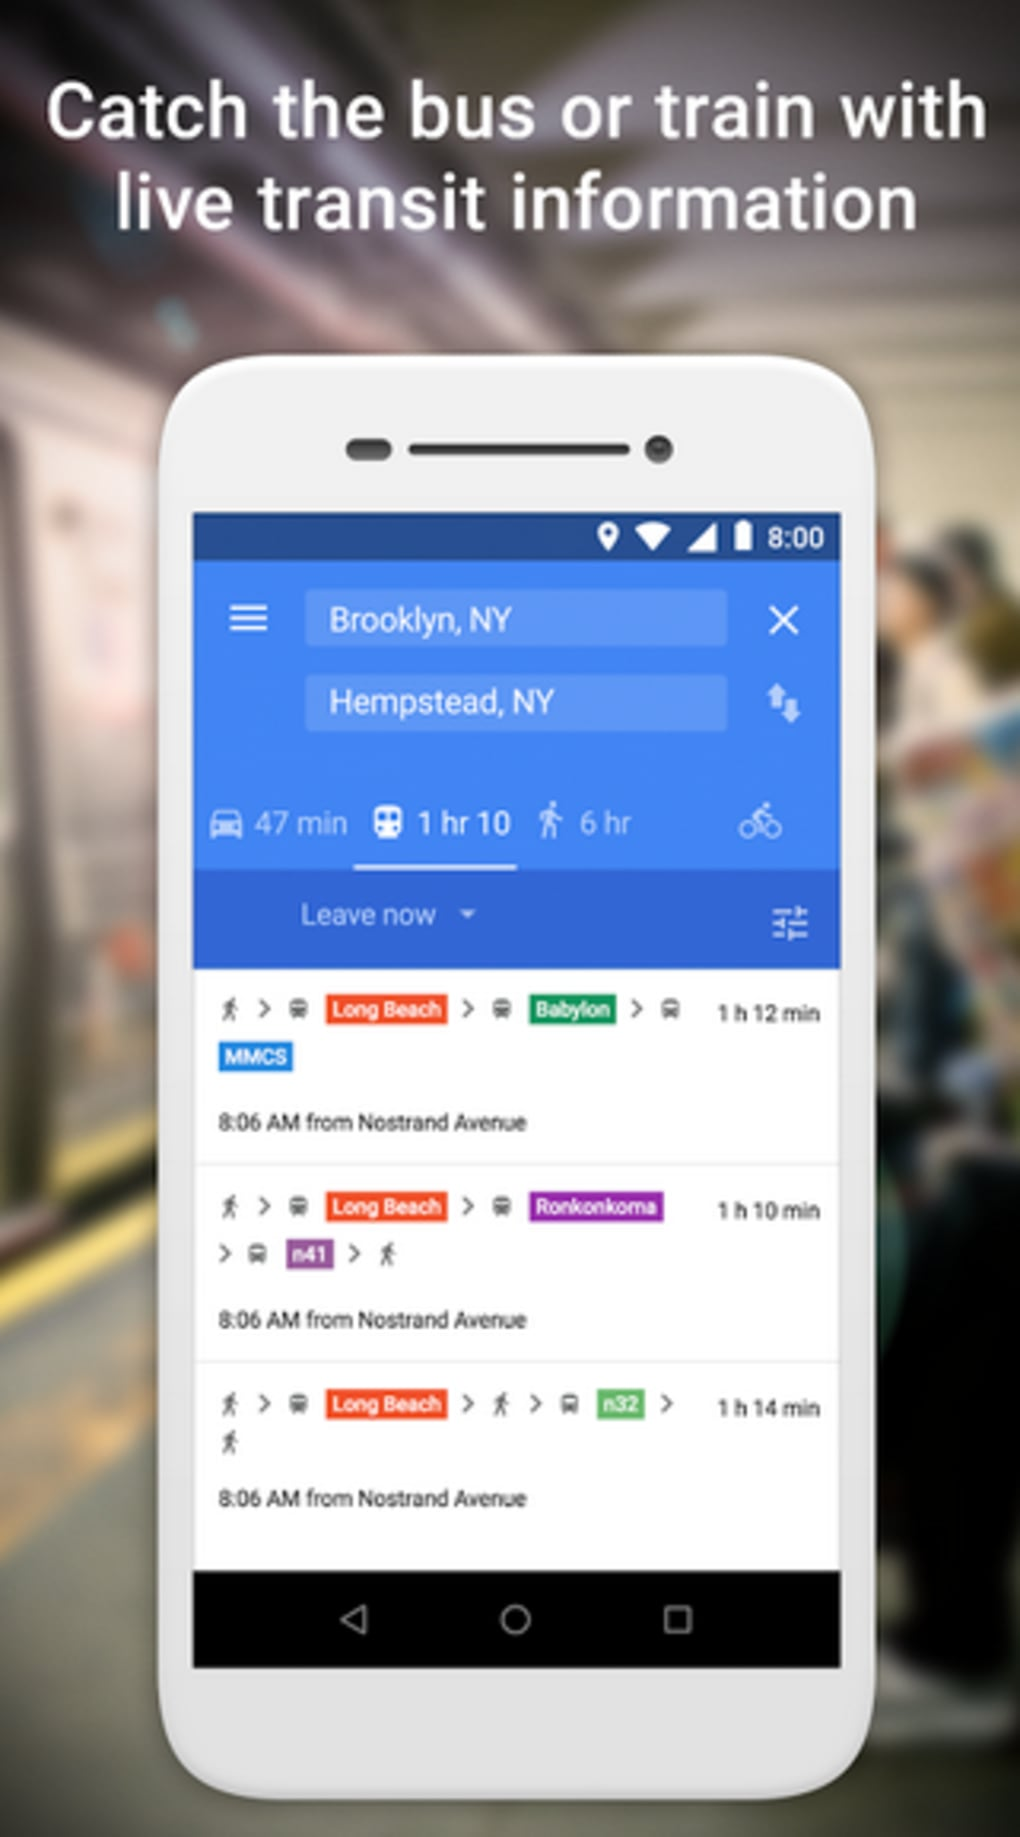 Google Maps Go for Android - Download on google chrome, google goggles, go to mail, google search, go to settings, go to internet, go to ebay, yahoo! maps, google earth, go to amazon, google docs, web mapping, google translate, go to home, go to netflix, google moon, google street view, go to facebook, satellite map images with missing or unclear data, google latitude, bing maps, route planning software, google mars, google sky, google voice, go to email, google map maker,